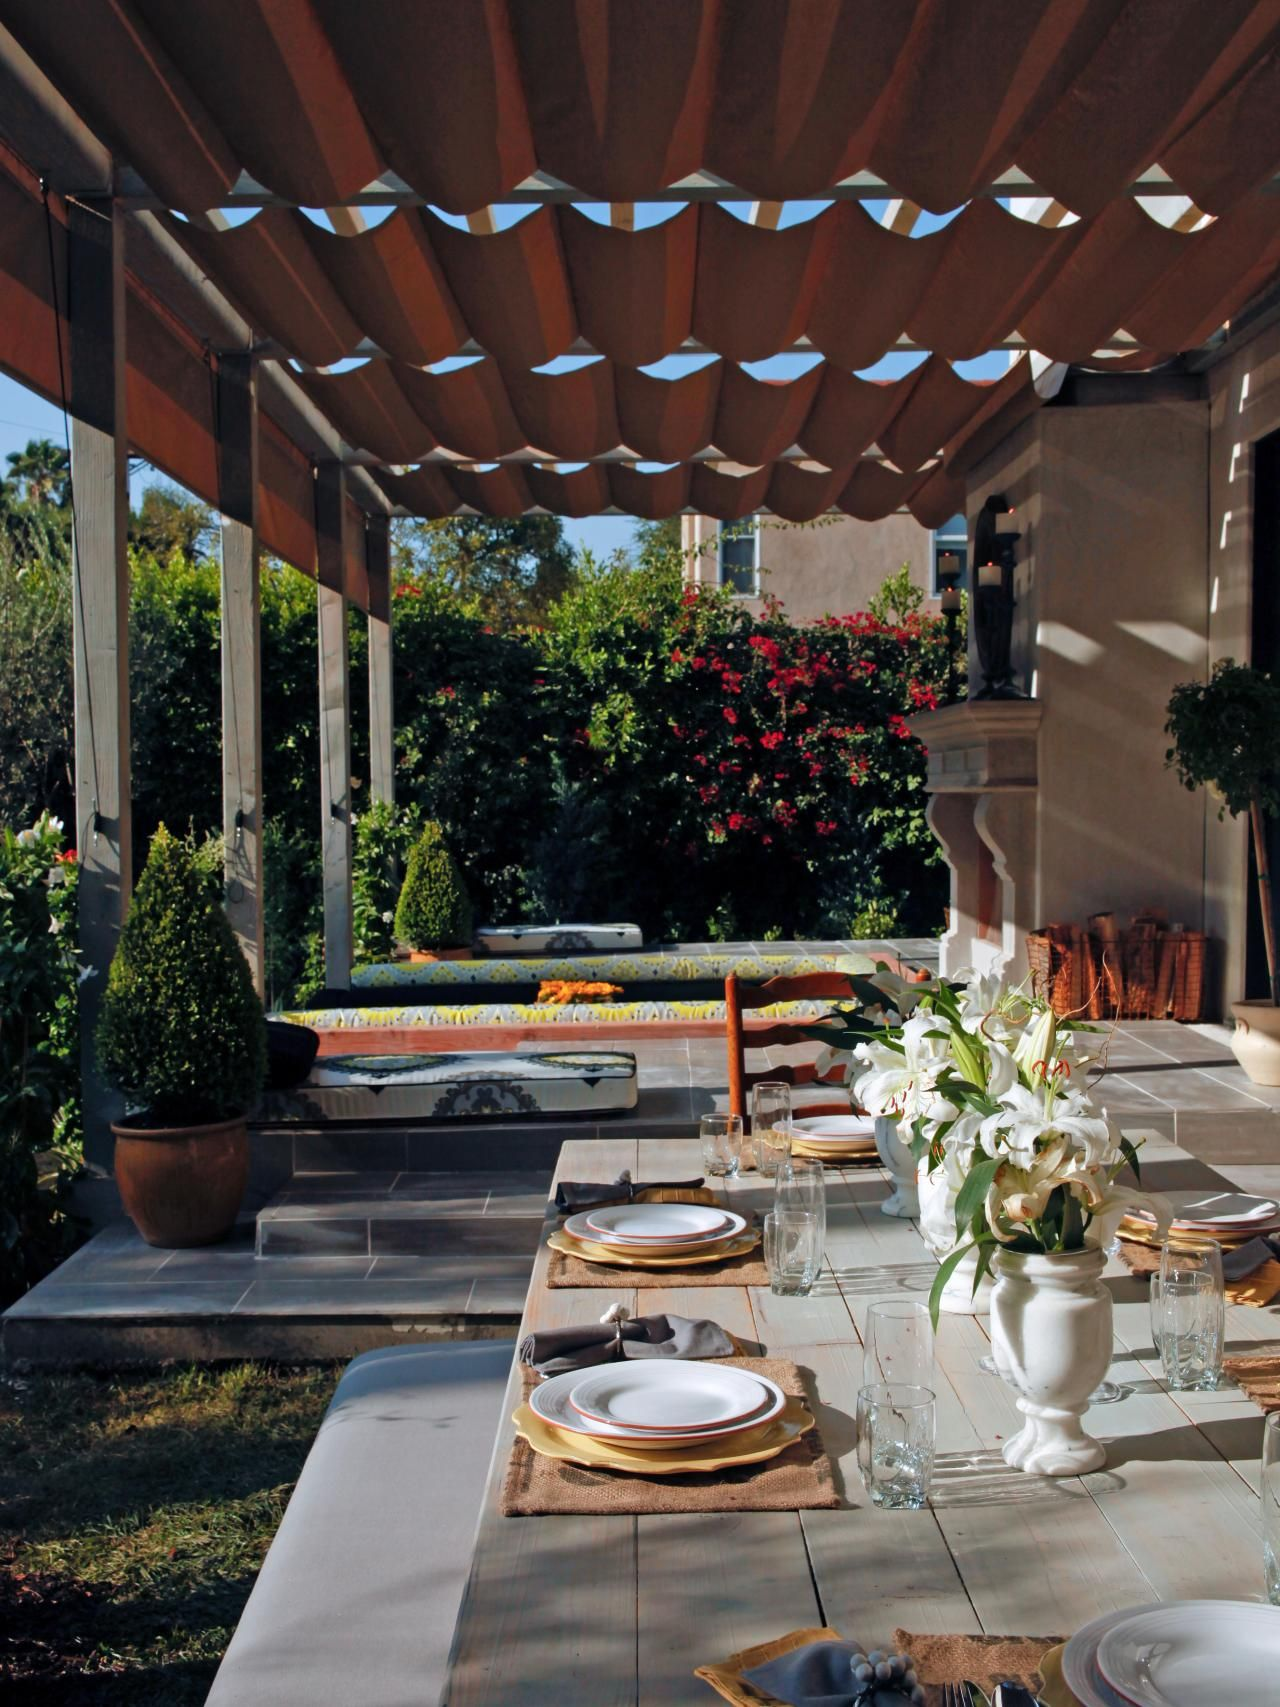 Make Shade Canopies Pergolas Gazebos and More & Make Shade: Canopies Pergolas Gazebos and More | Shade canopy ...